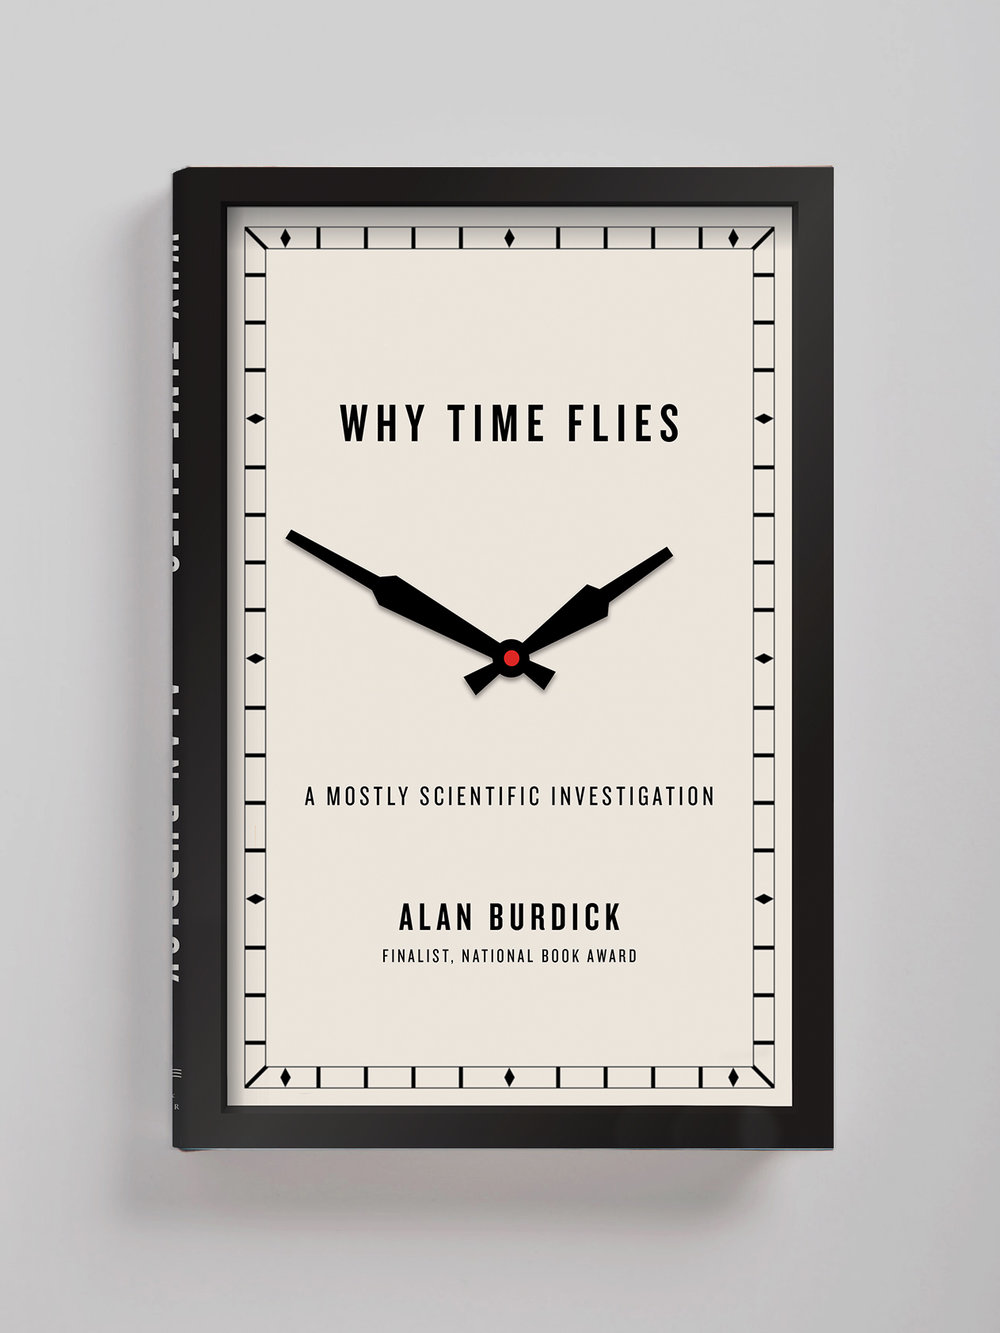 Why Time Flies—Alan Burdick